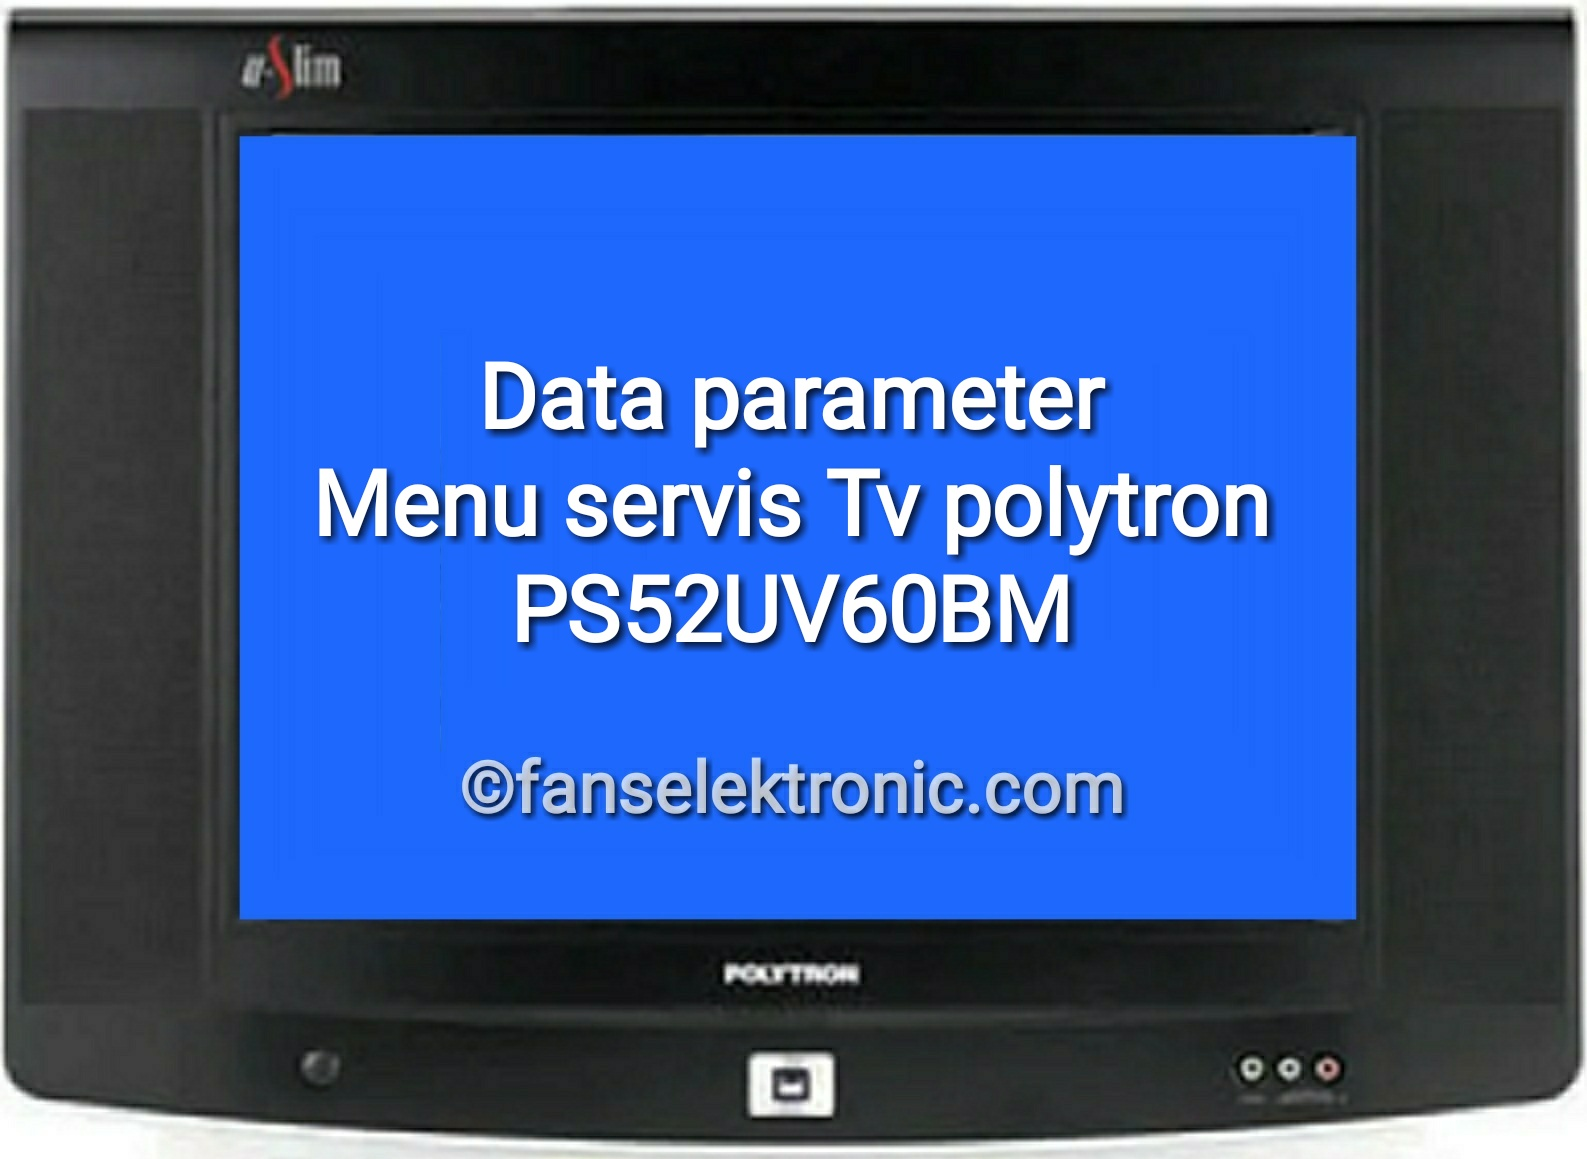 Menu servis data parameter tv polytron